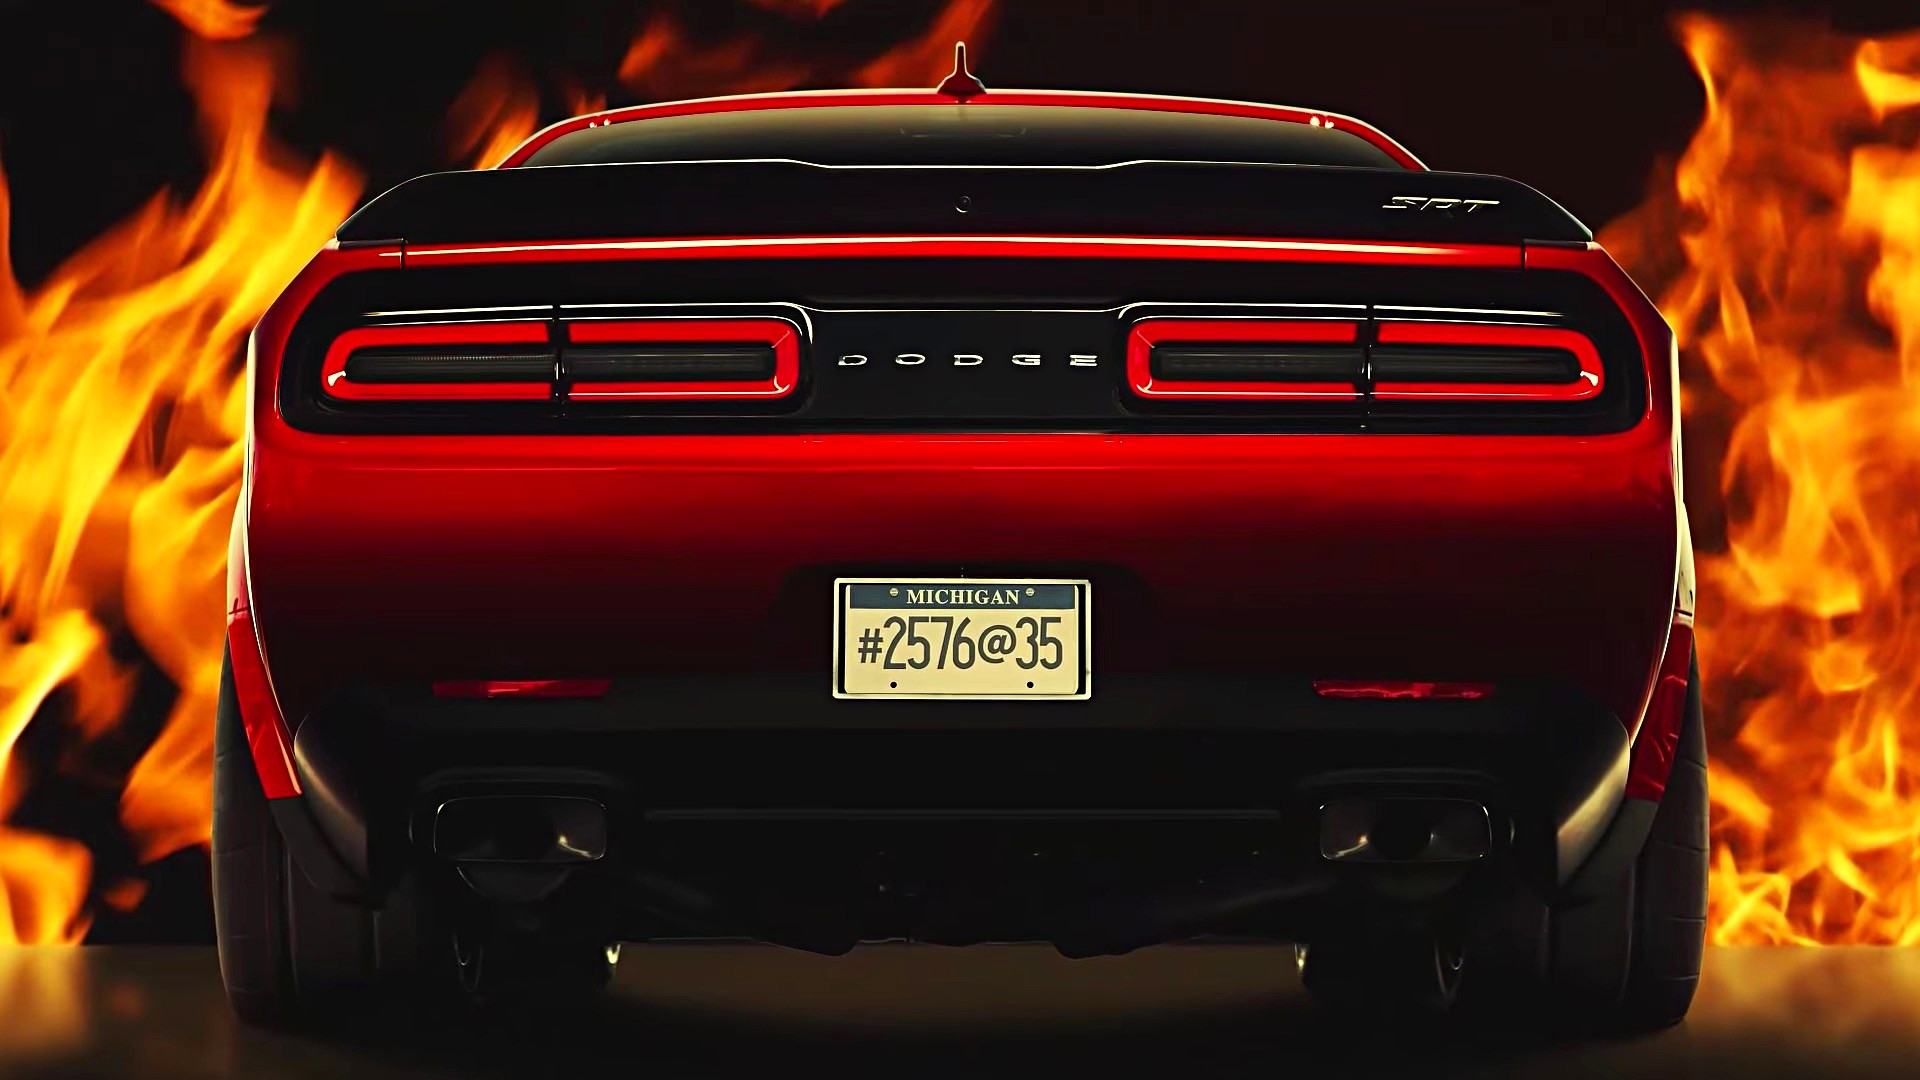 Car Wrap Images Wallpaper Update Everything We Know So Far On The Dodge Demon Hot